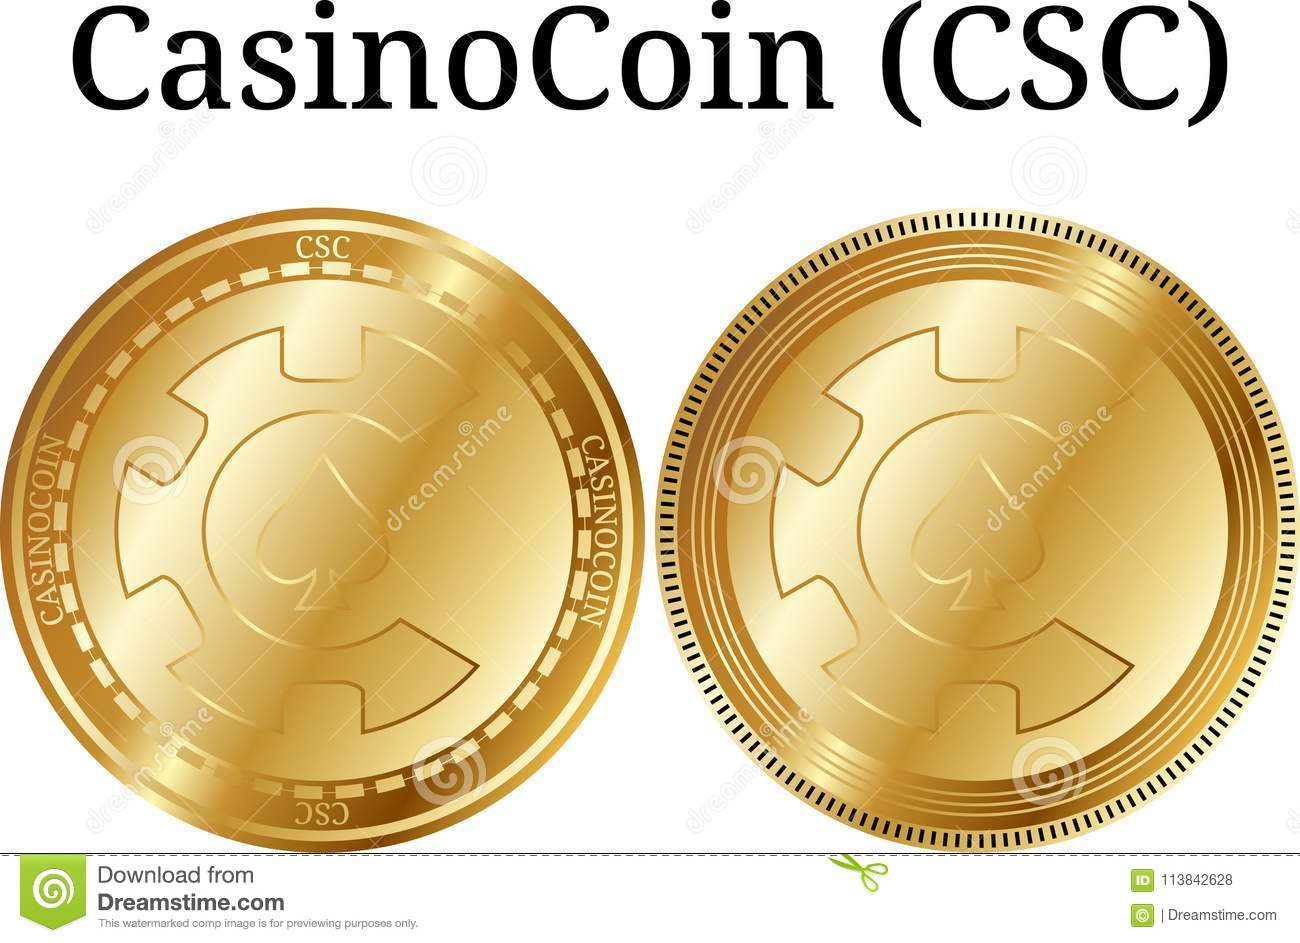 cryptocurrency casino coin